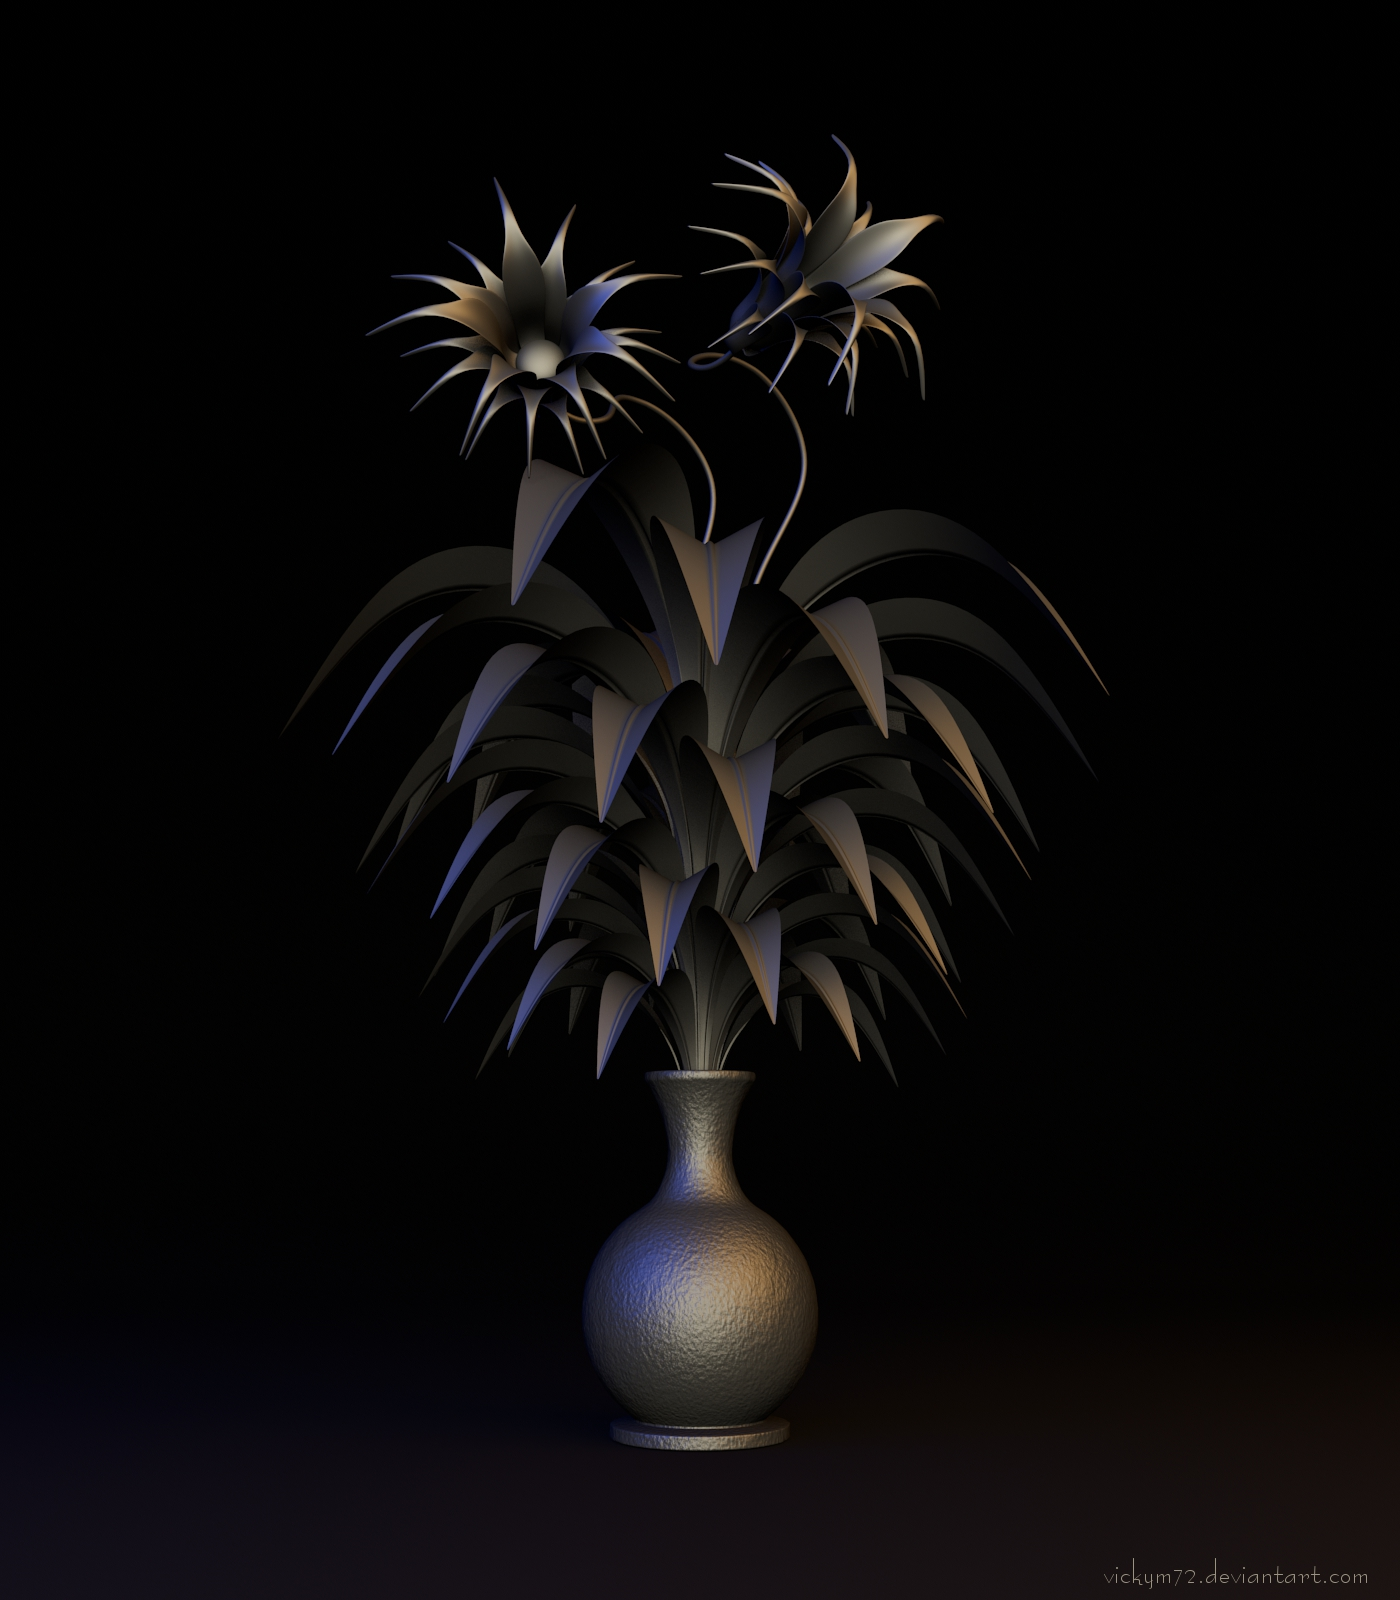 Houseplant by VickyM72